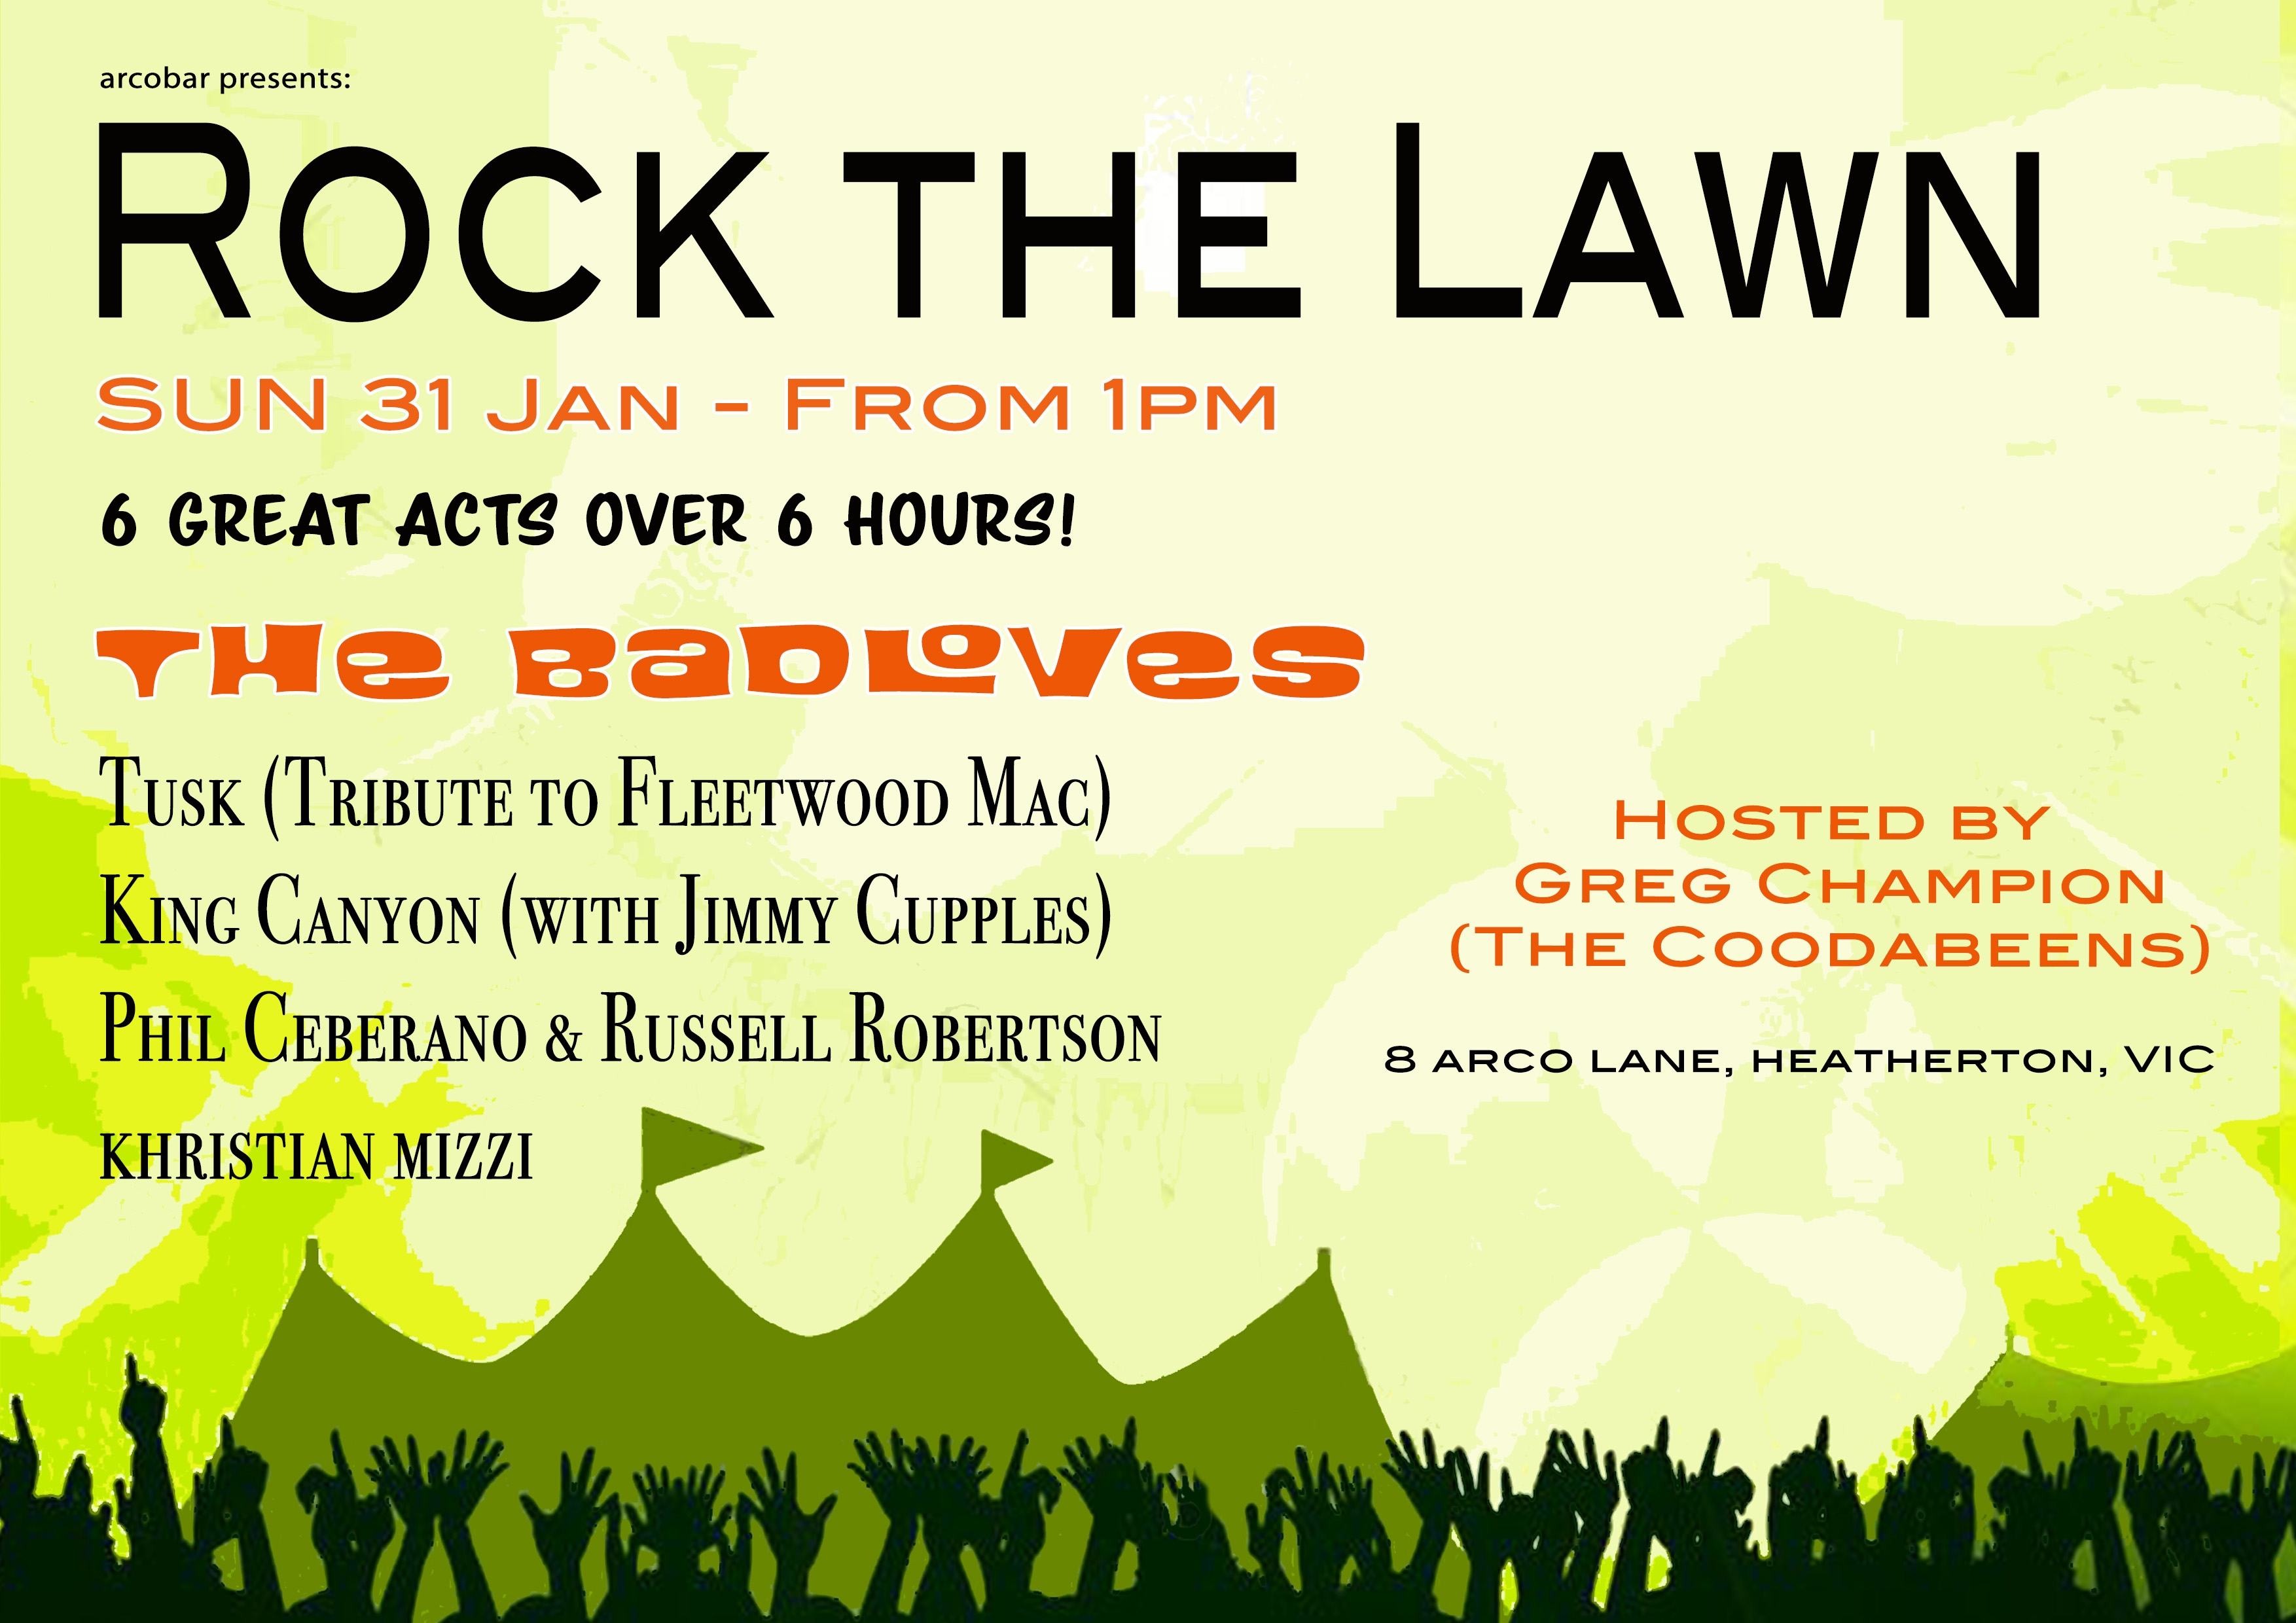 ROCK THE LAWNS - Featuring The Badloves & Over Six Hours Of Great Bands And Artists